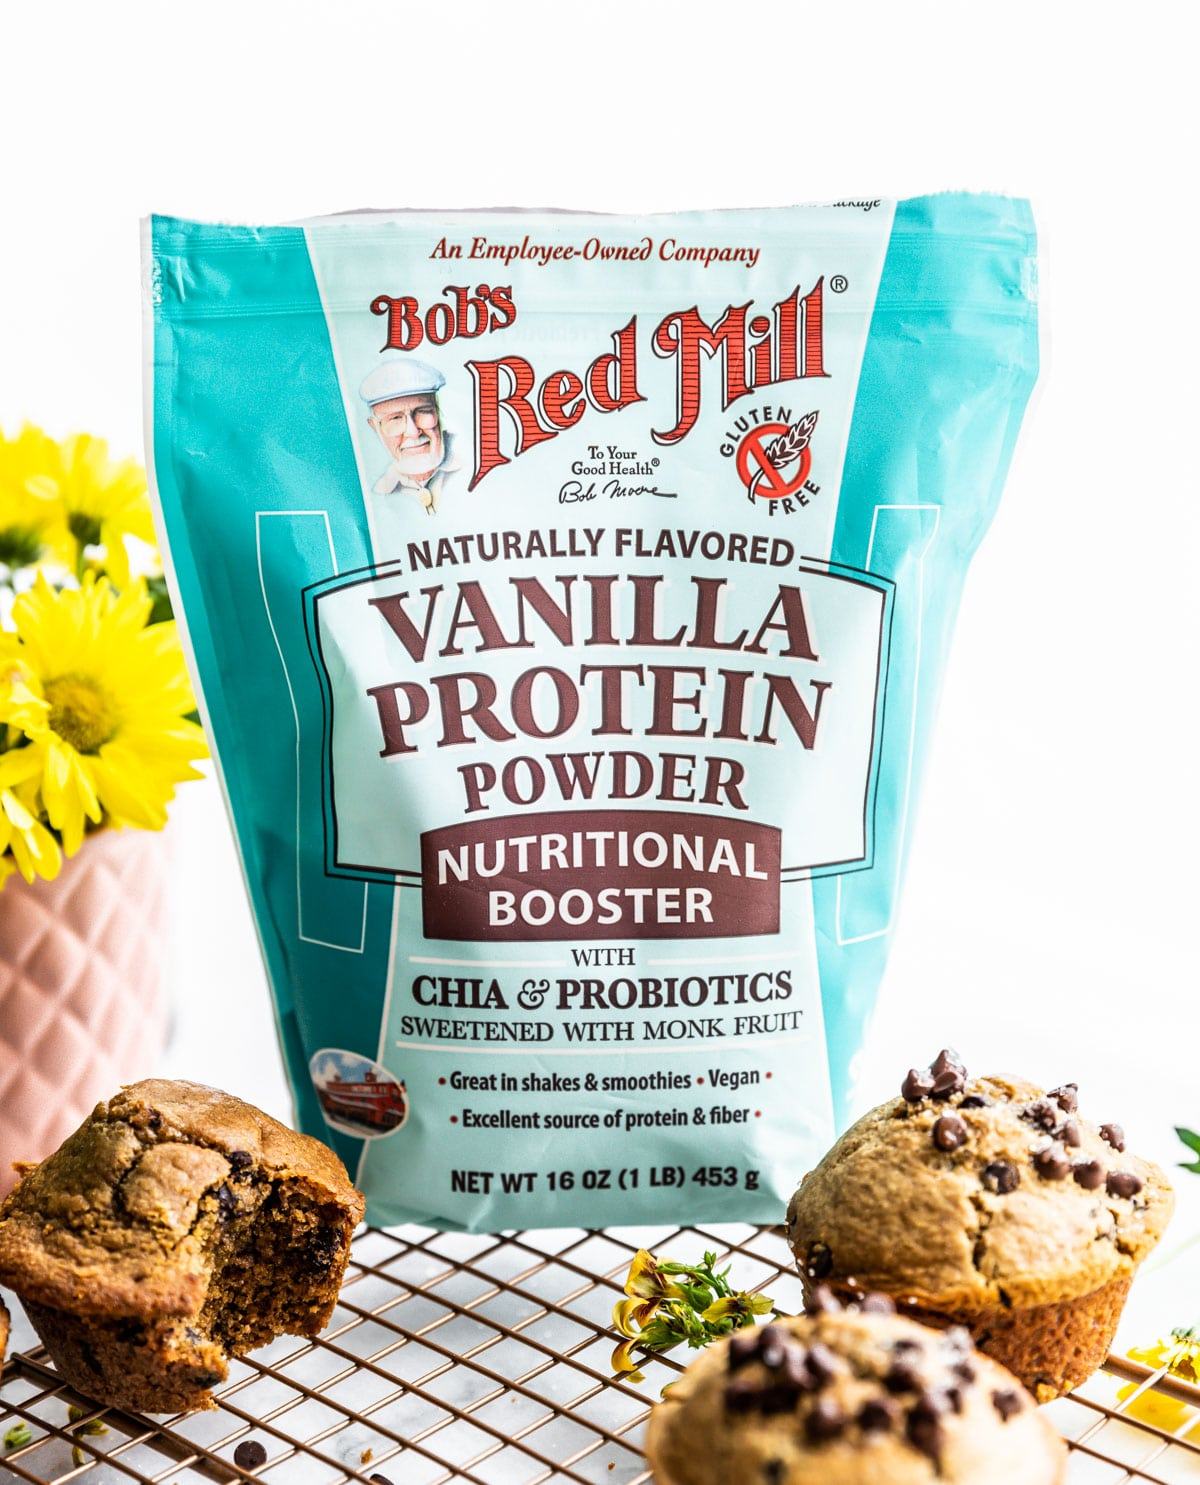 bag of Bob's Red Mill vanilla protein powder nutritional booster